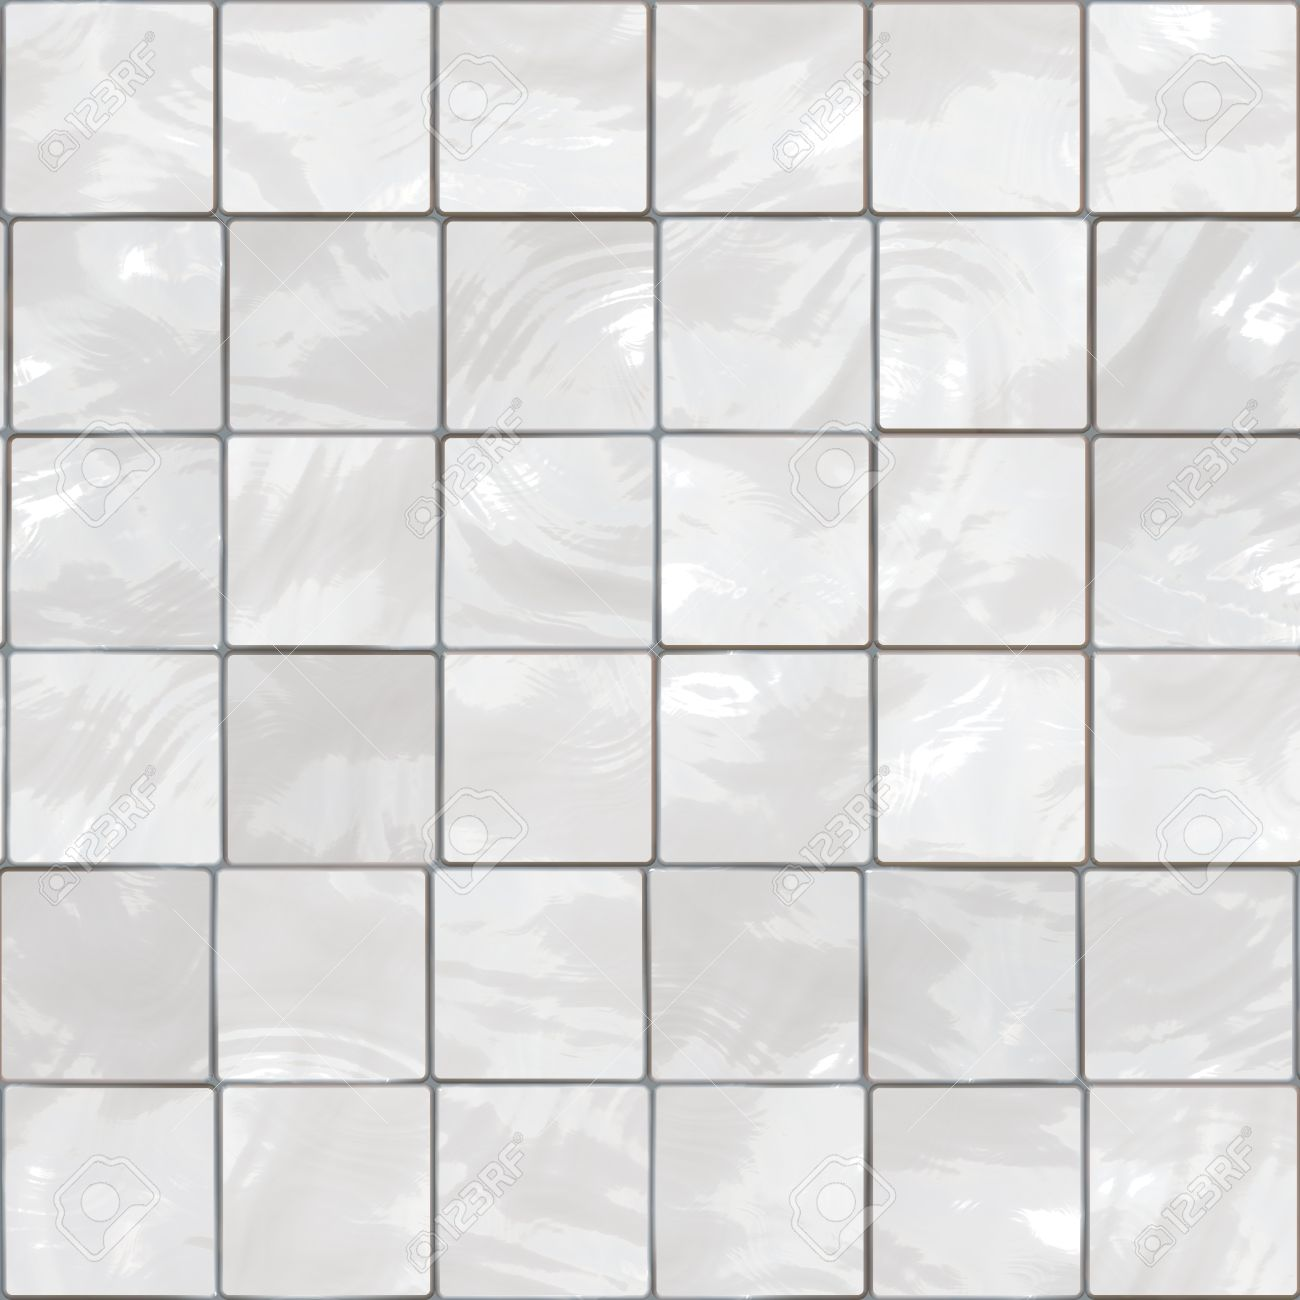 White Bathroom Tiles Background - This Tiles Seamlessly. Stock Photo ...